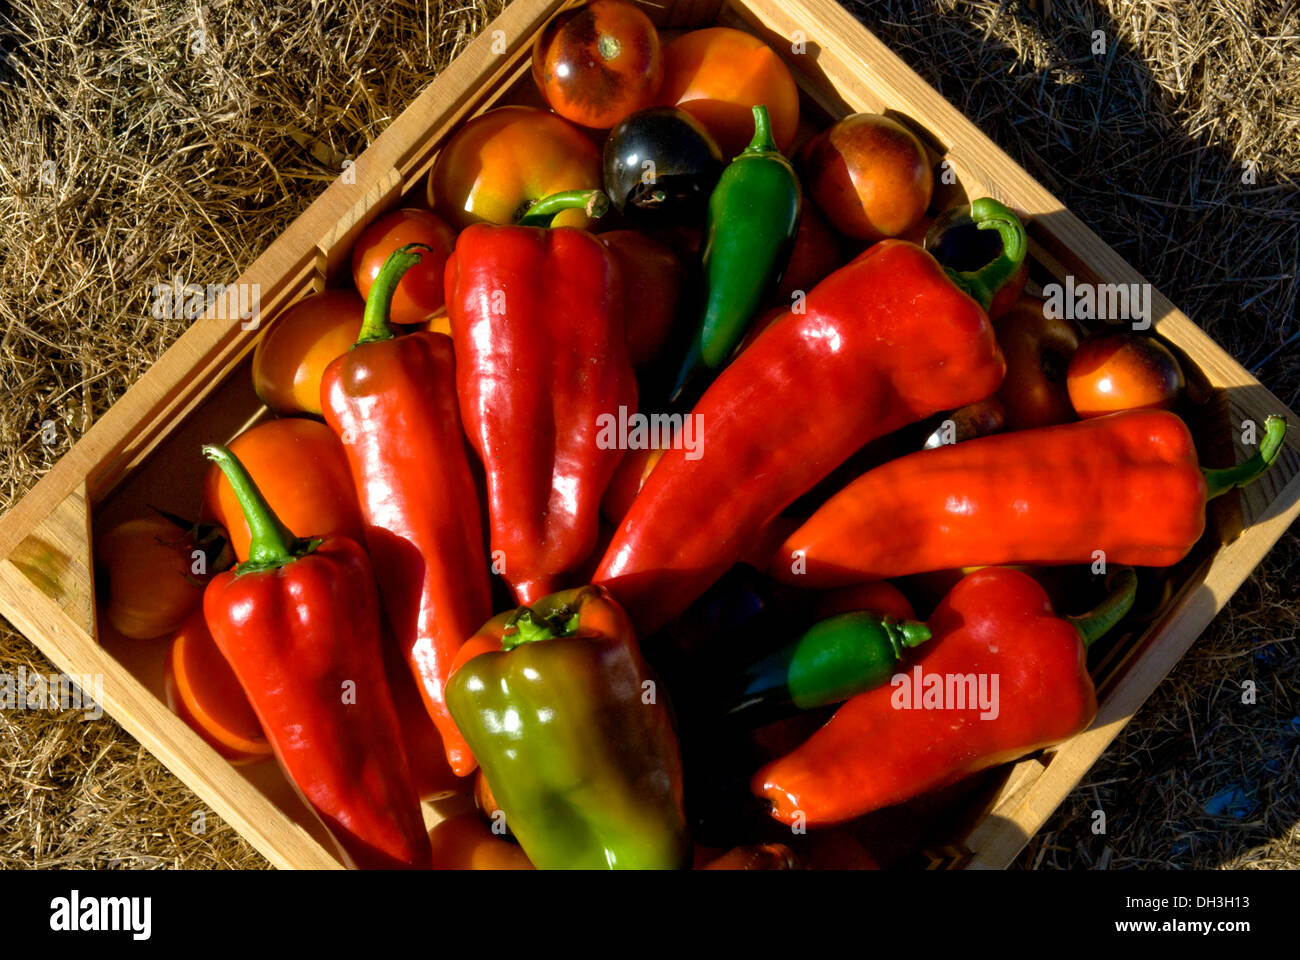 Box of organic tomatoes, sweet and hot peppers purchased from an